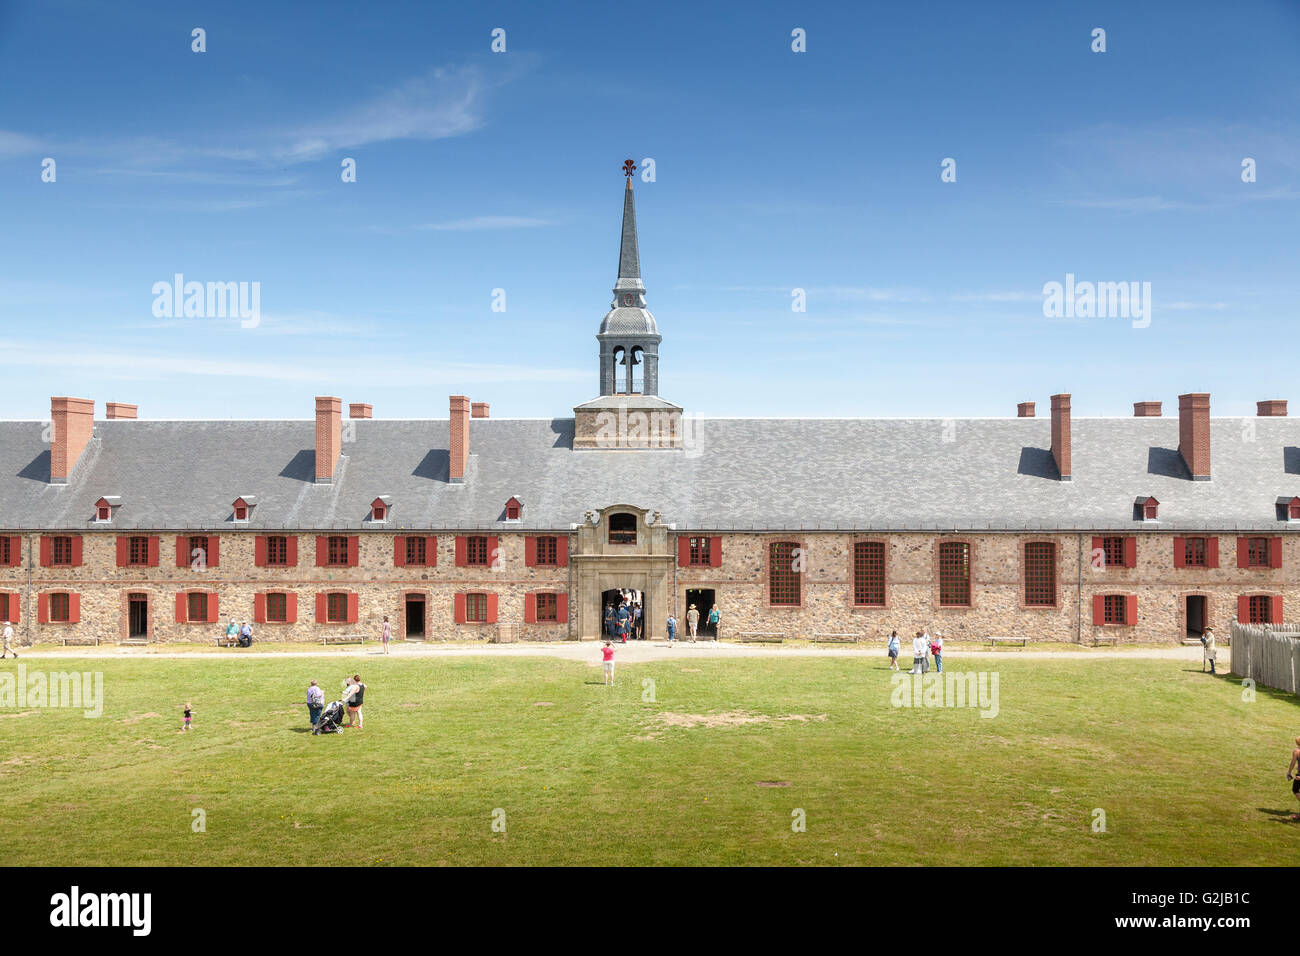 King's Bastion at the Fortress of Louisbourg National Historic Site in Nova Scotia - Stock Image